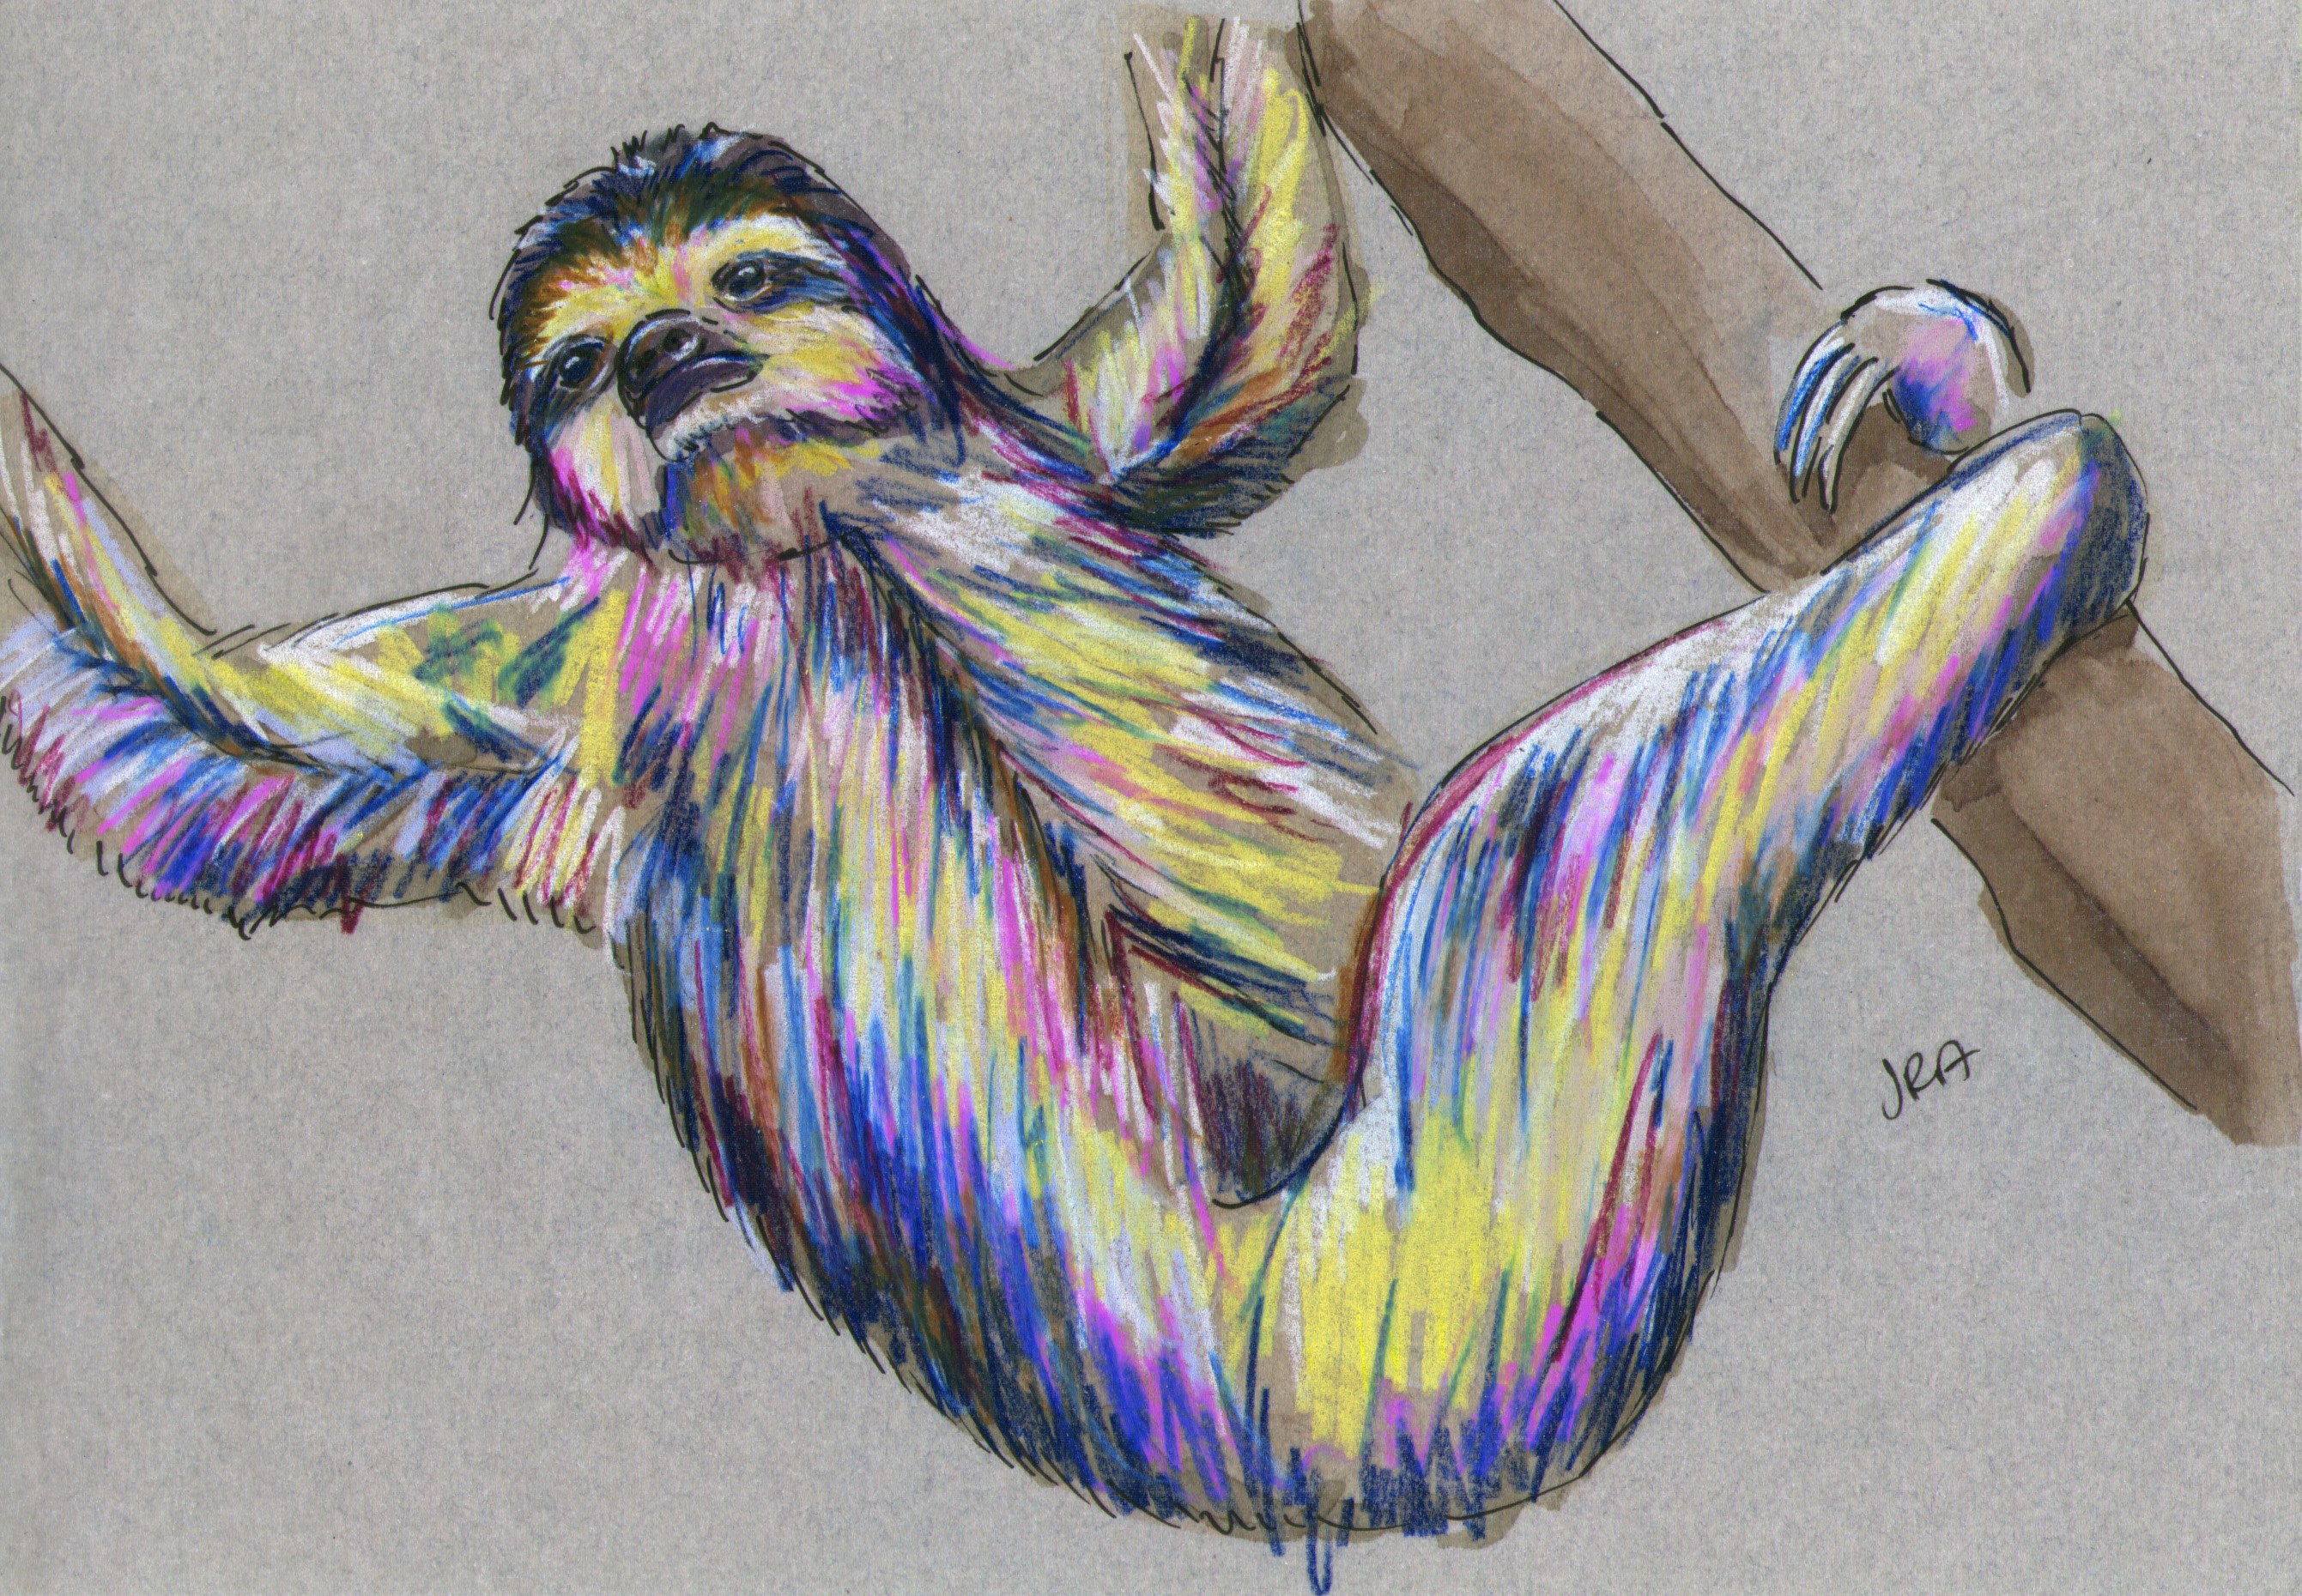 Drawn sloth three toed sloth Described Pygmy  Toed Sloth